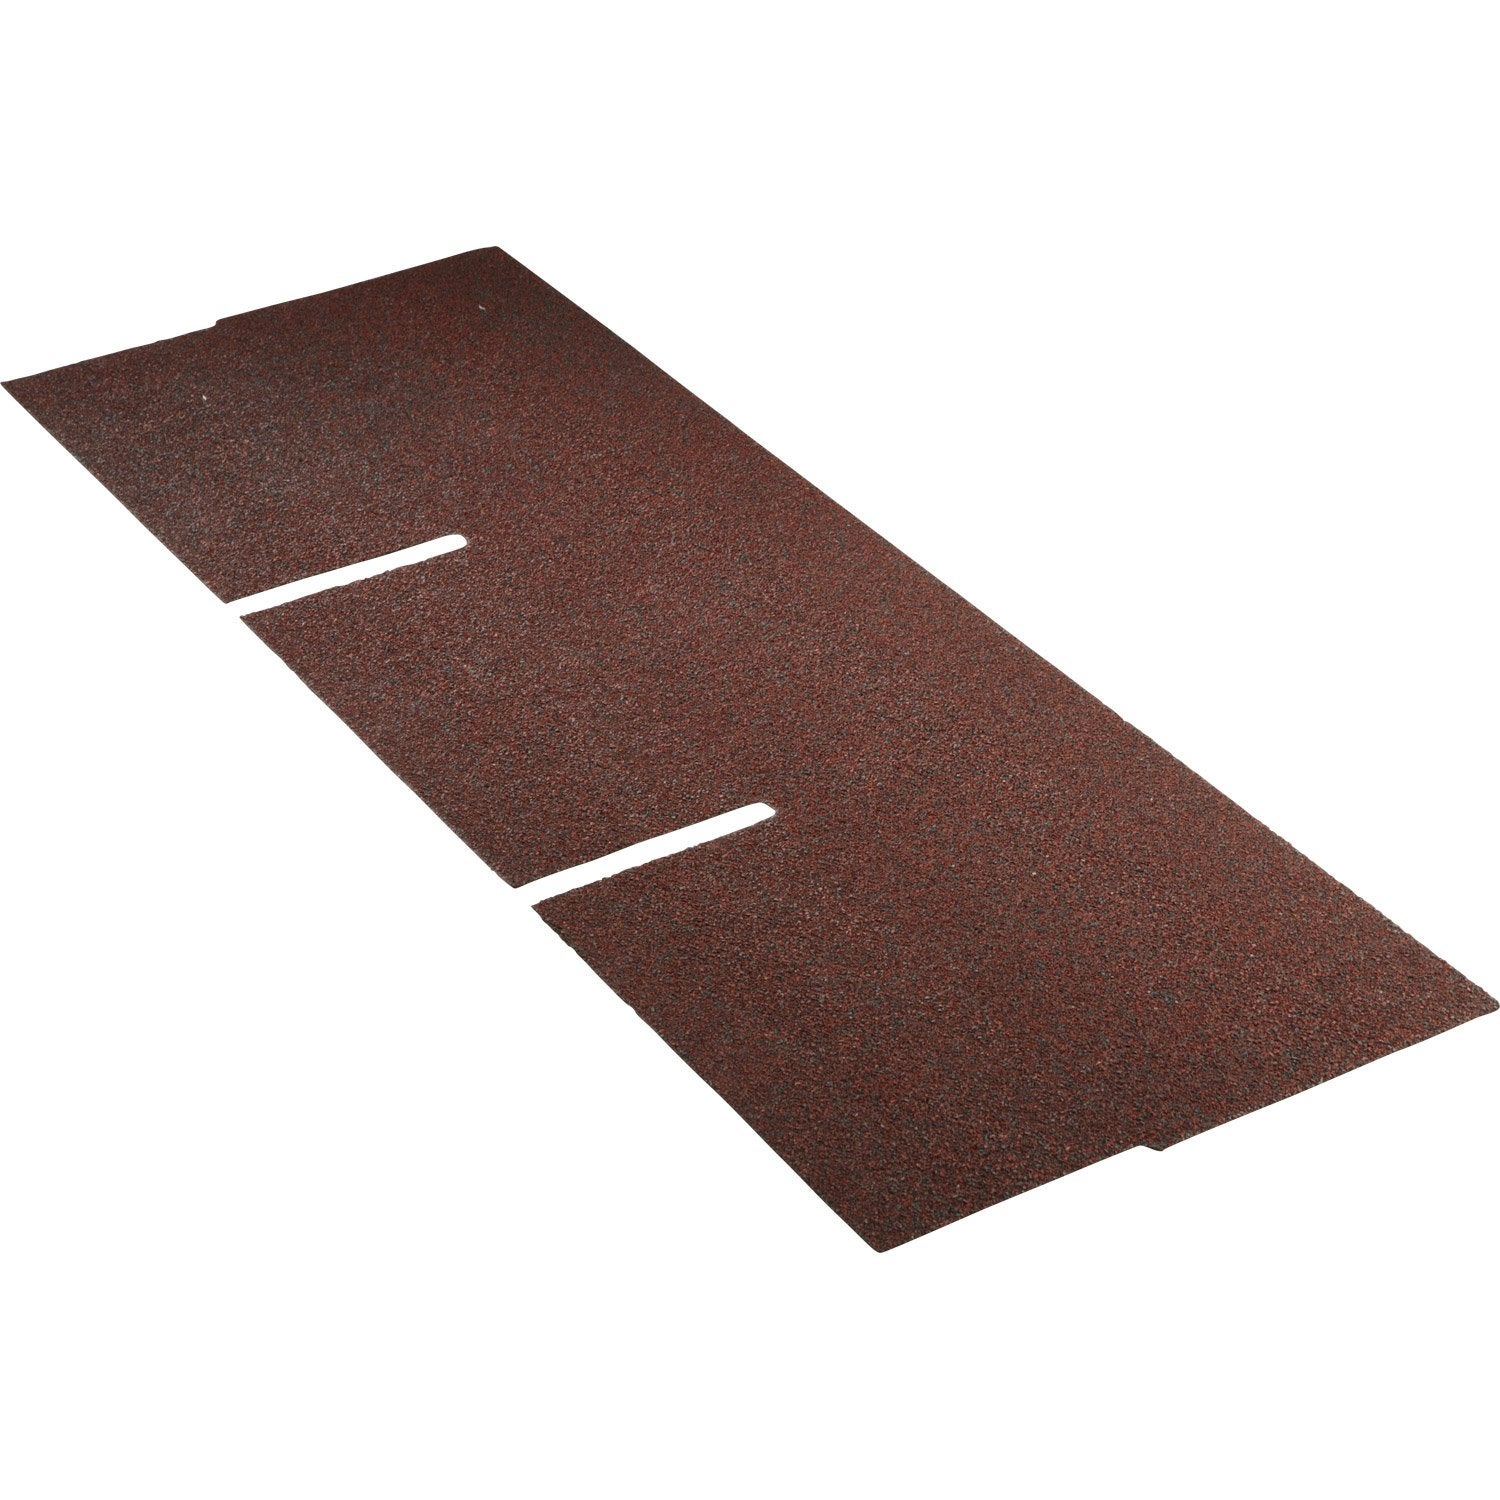 Bardeau rouge top shingle x 1m leroy merlin - Vouwborstel leroy merlin ...